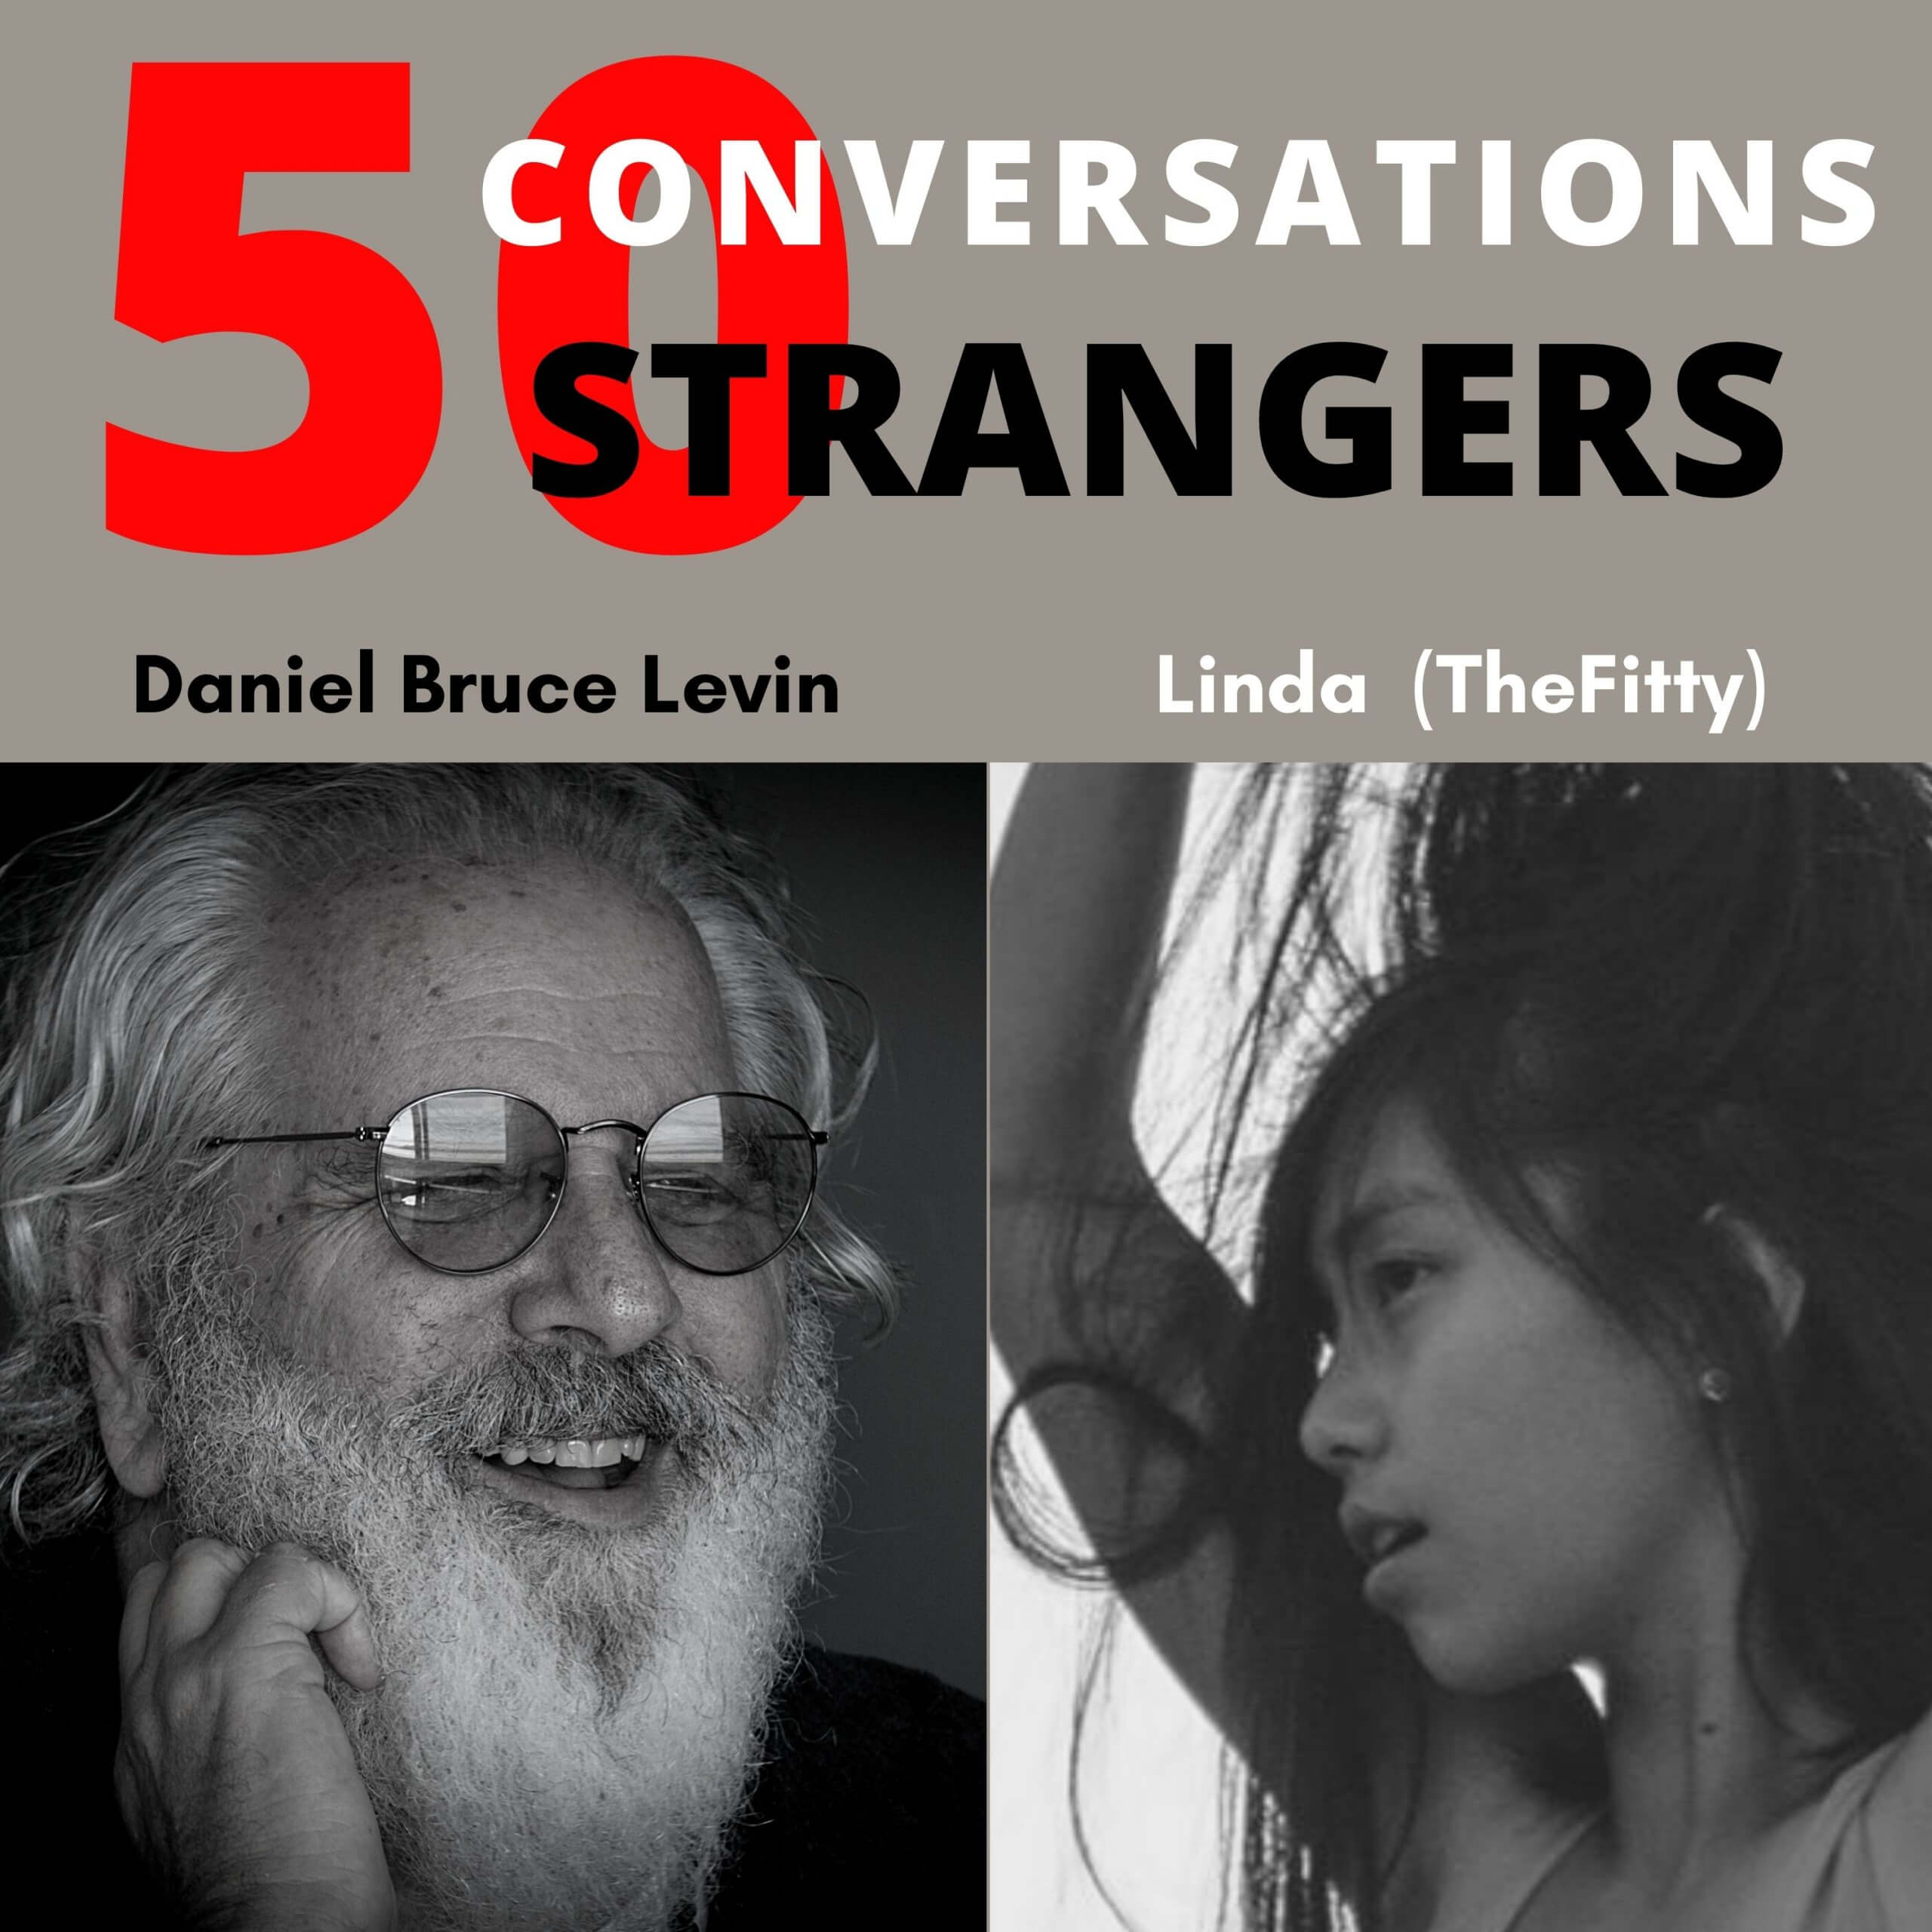 50 Conversations with 50 Strangers with Linda (TheFitty)